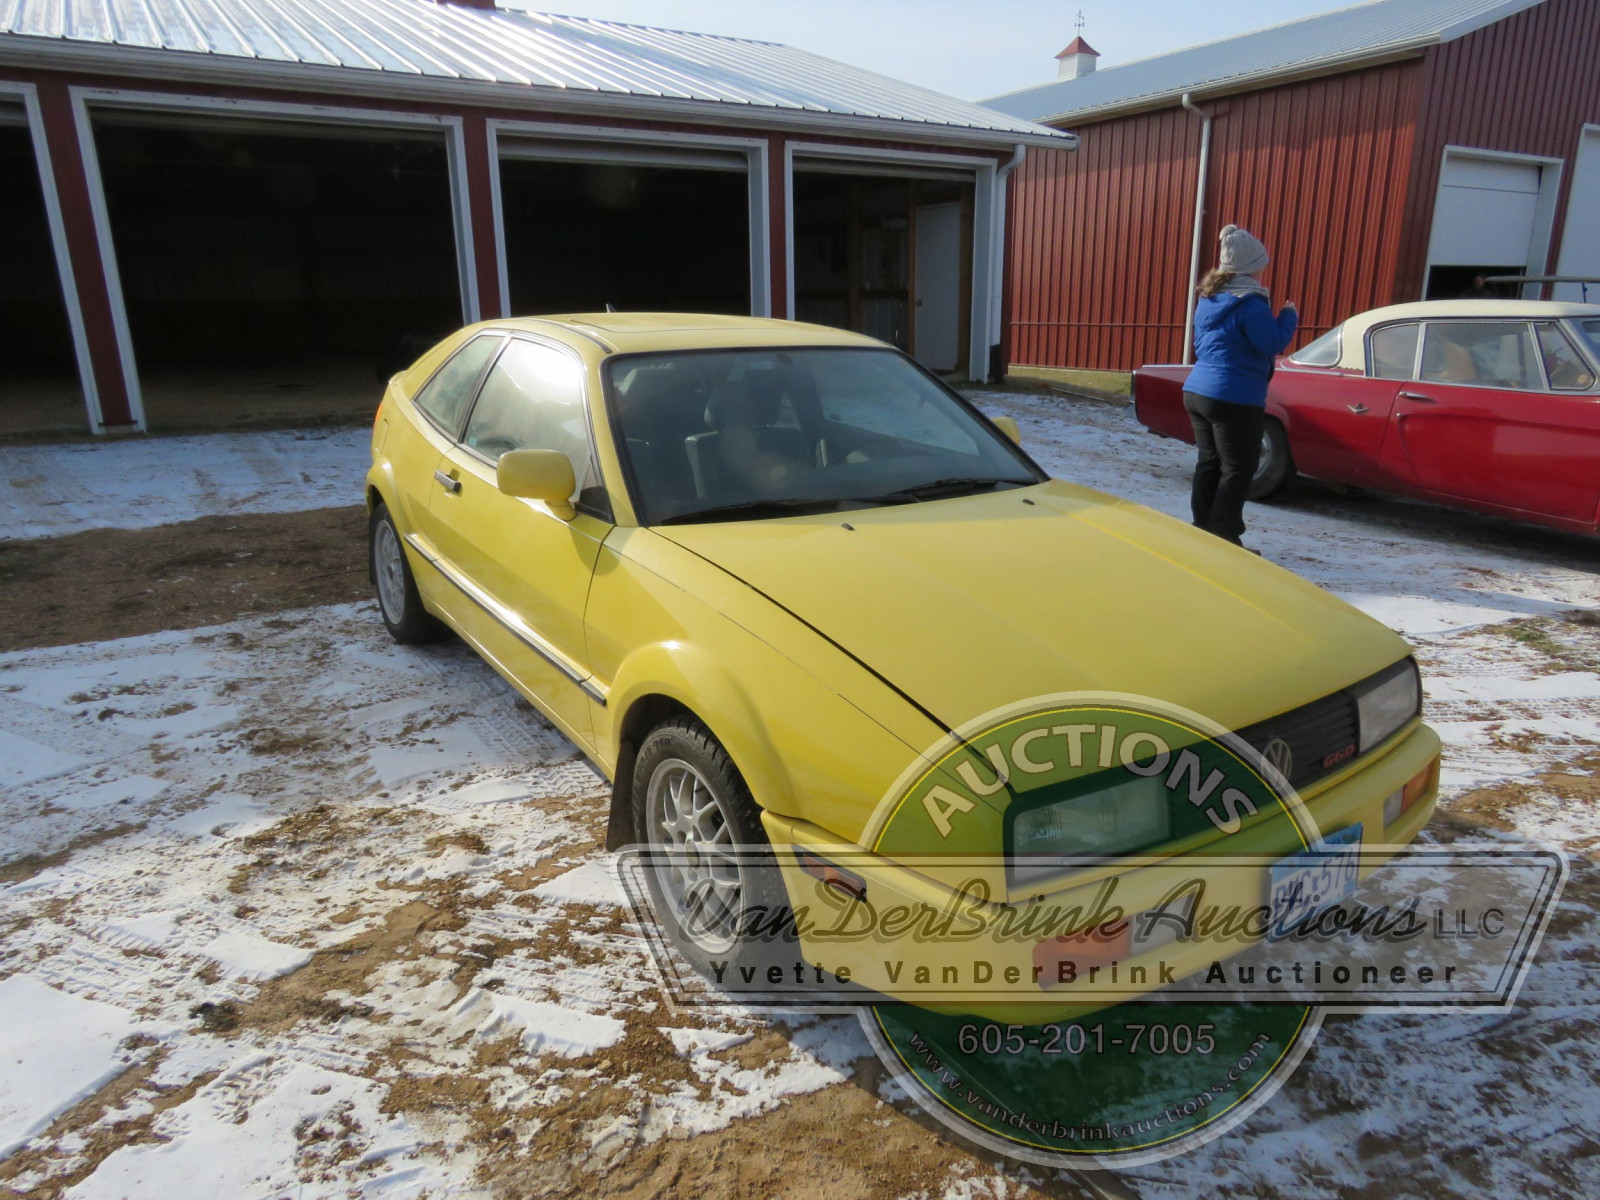 1991 VW Carrado G60 Coupe - Image 3